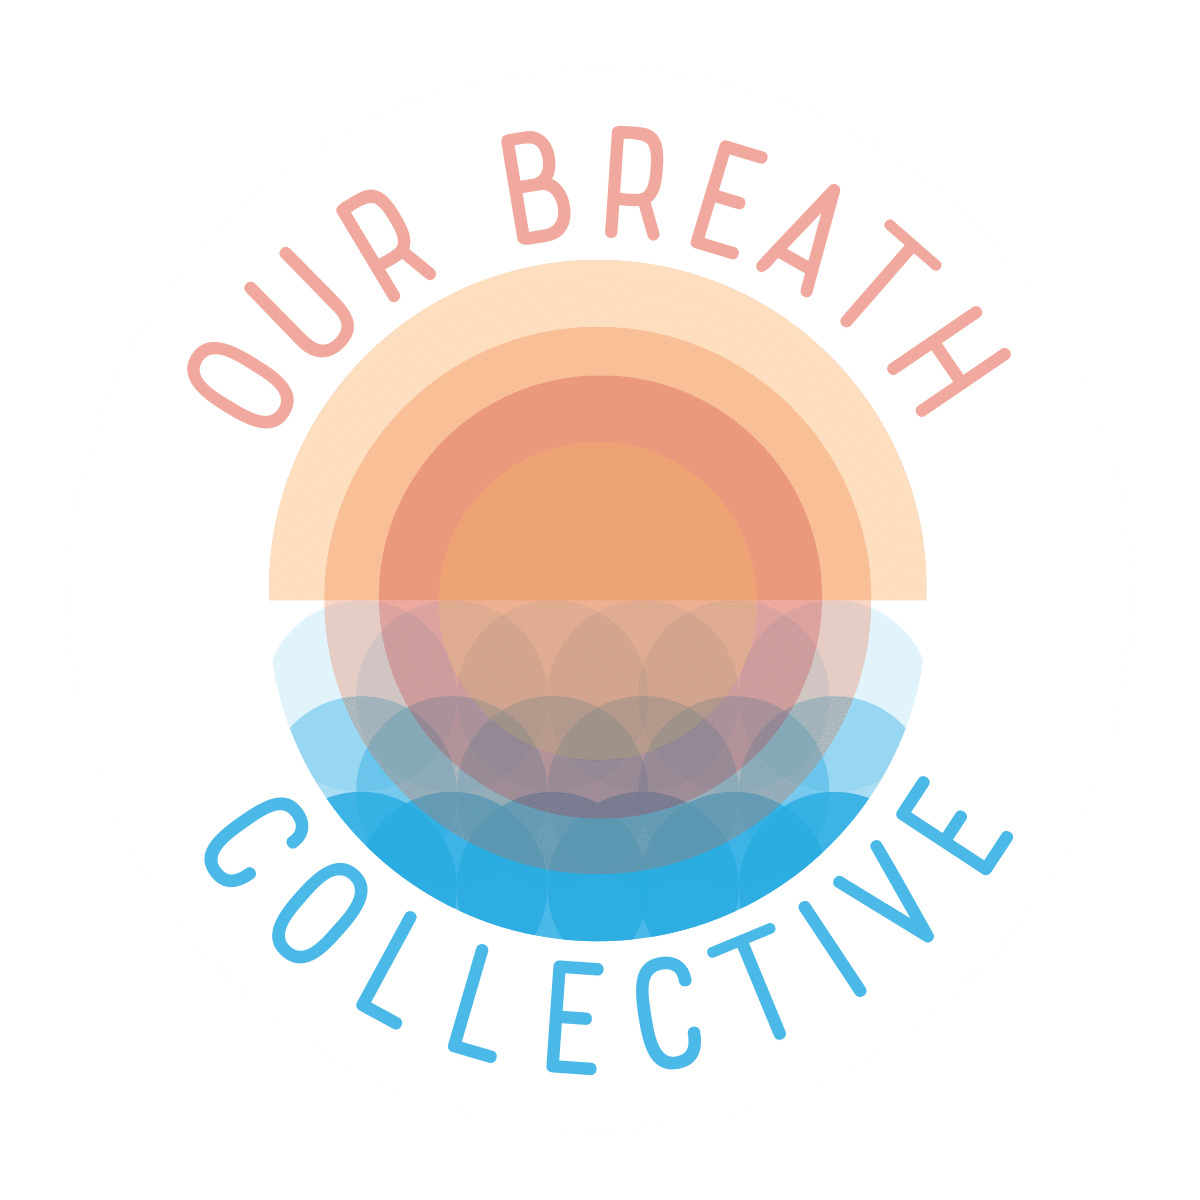 Our Breath Collective